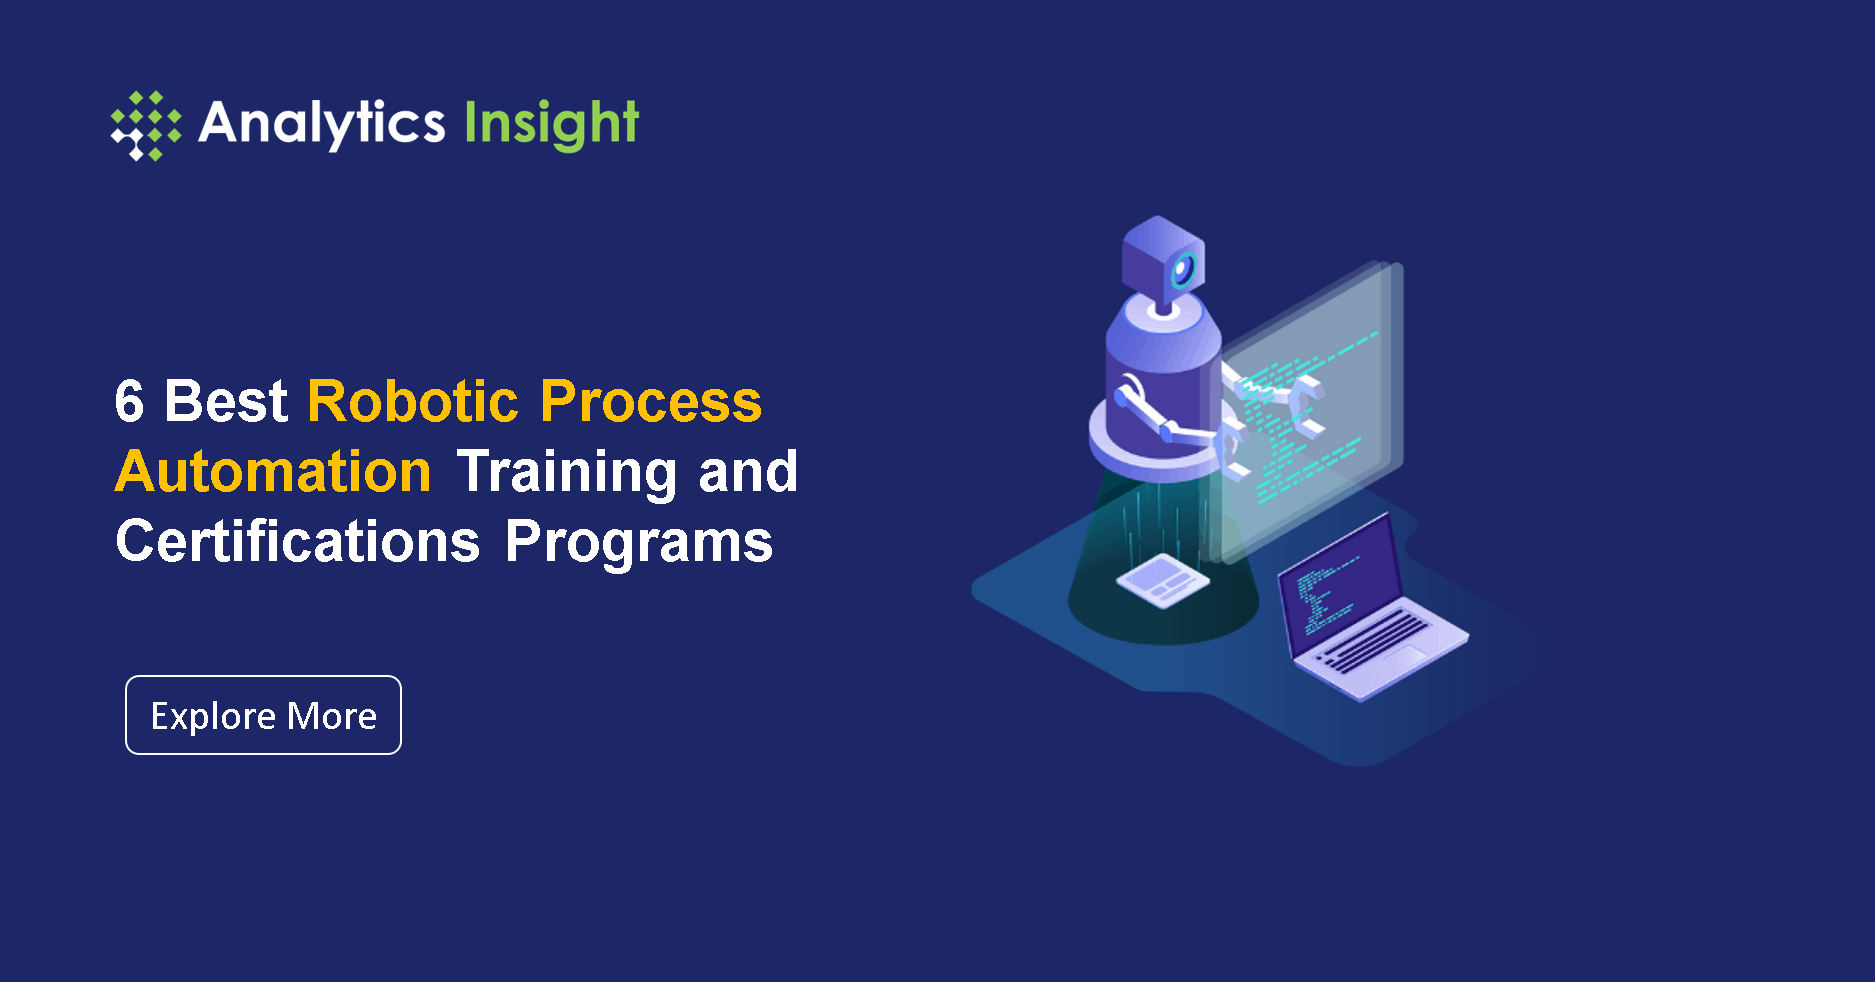 6 Best Robotic Process Automation Training and Certifications